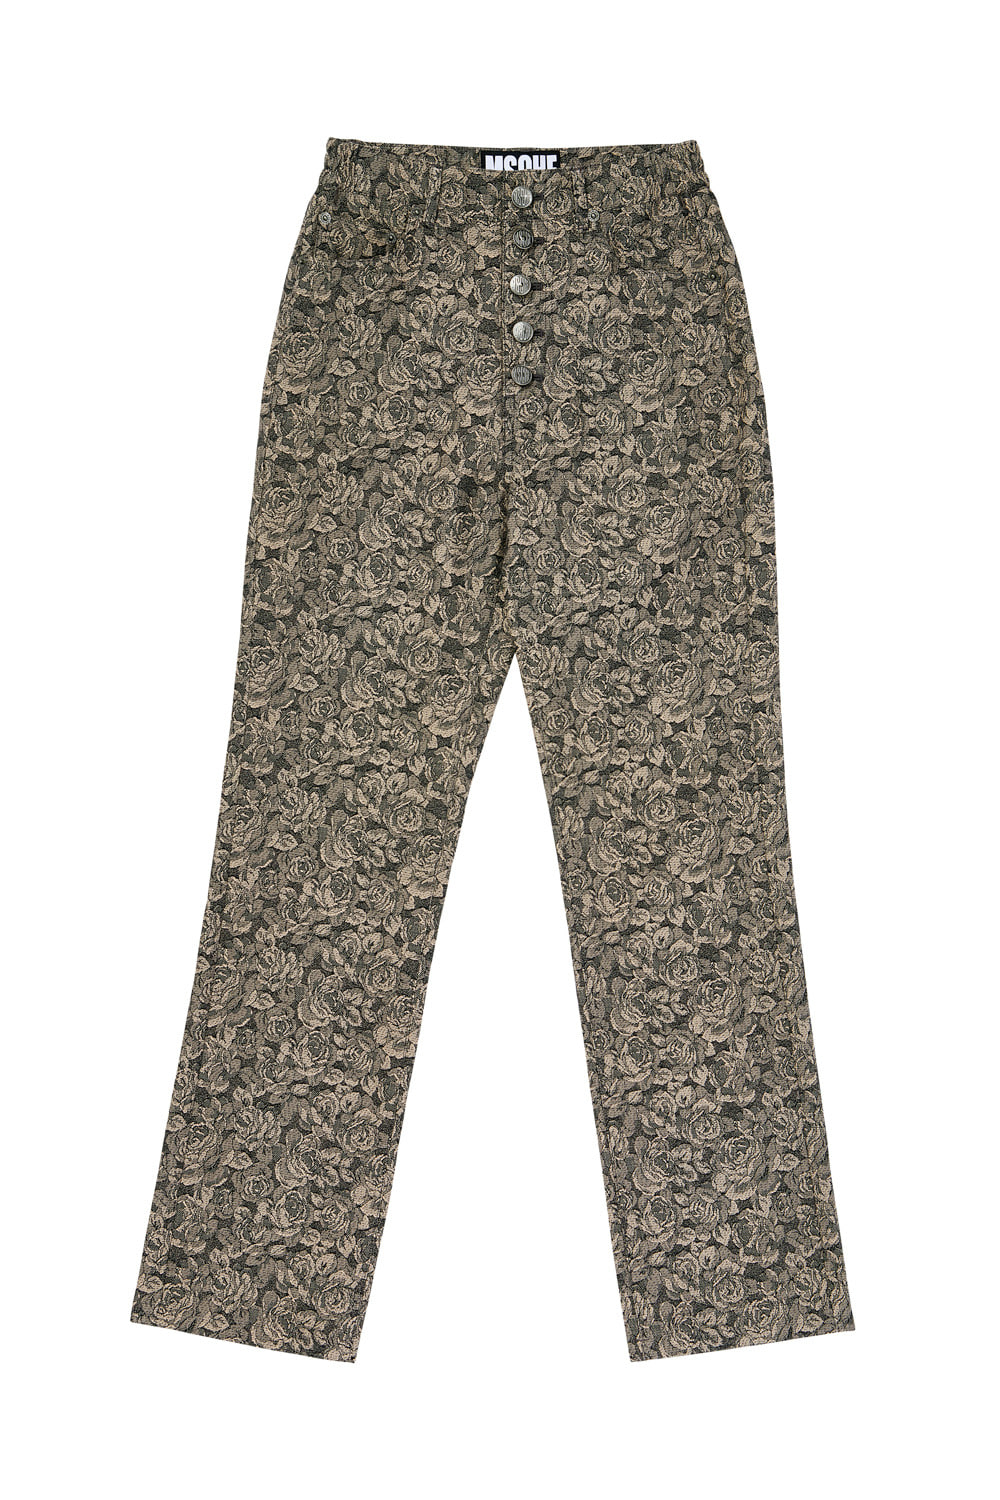 JACQUARD HIGH WAIST PANTS_beige rose